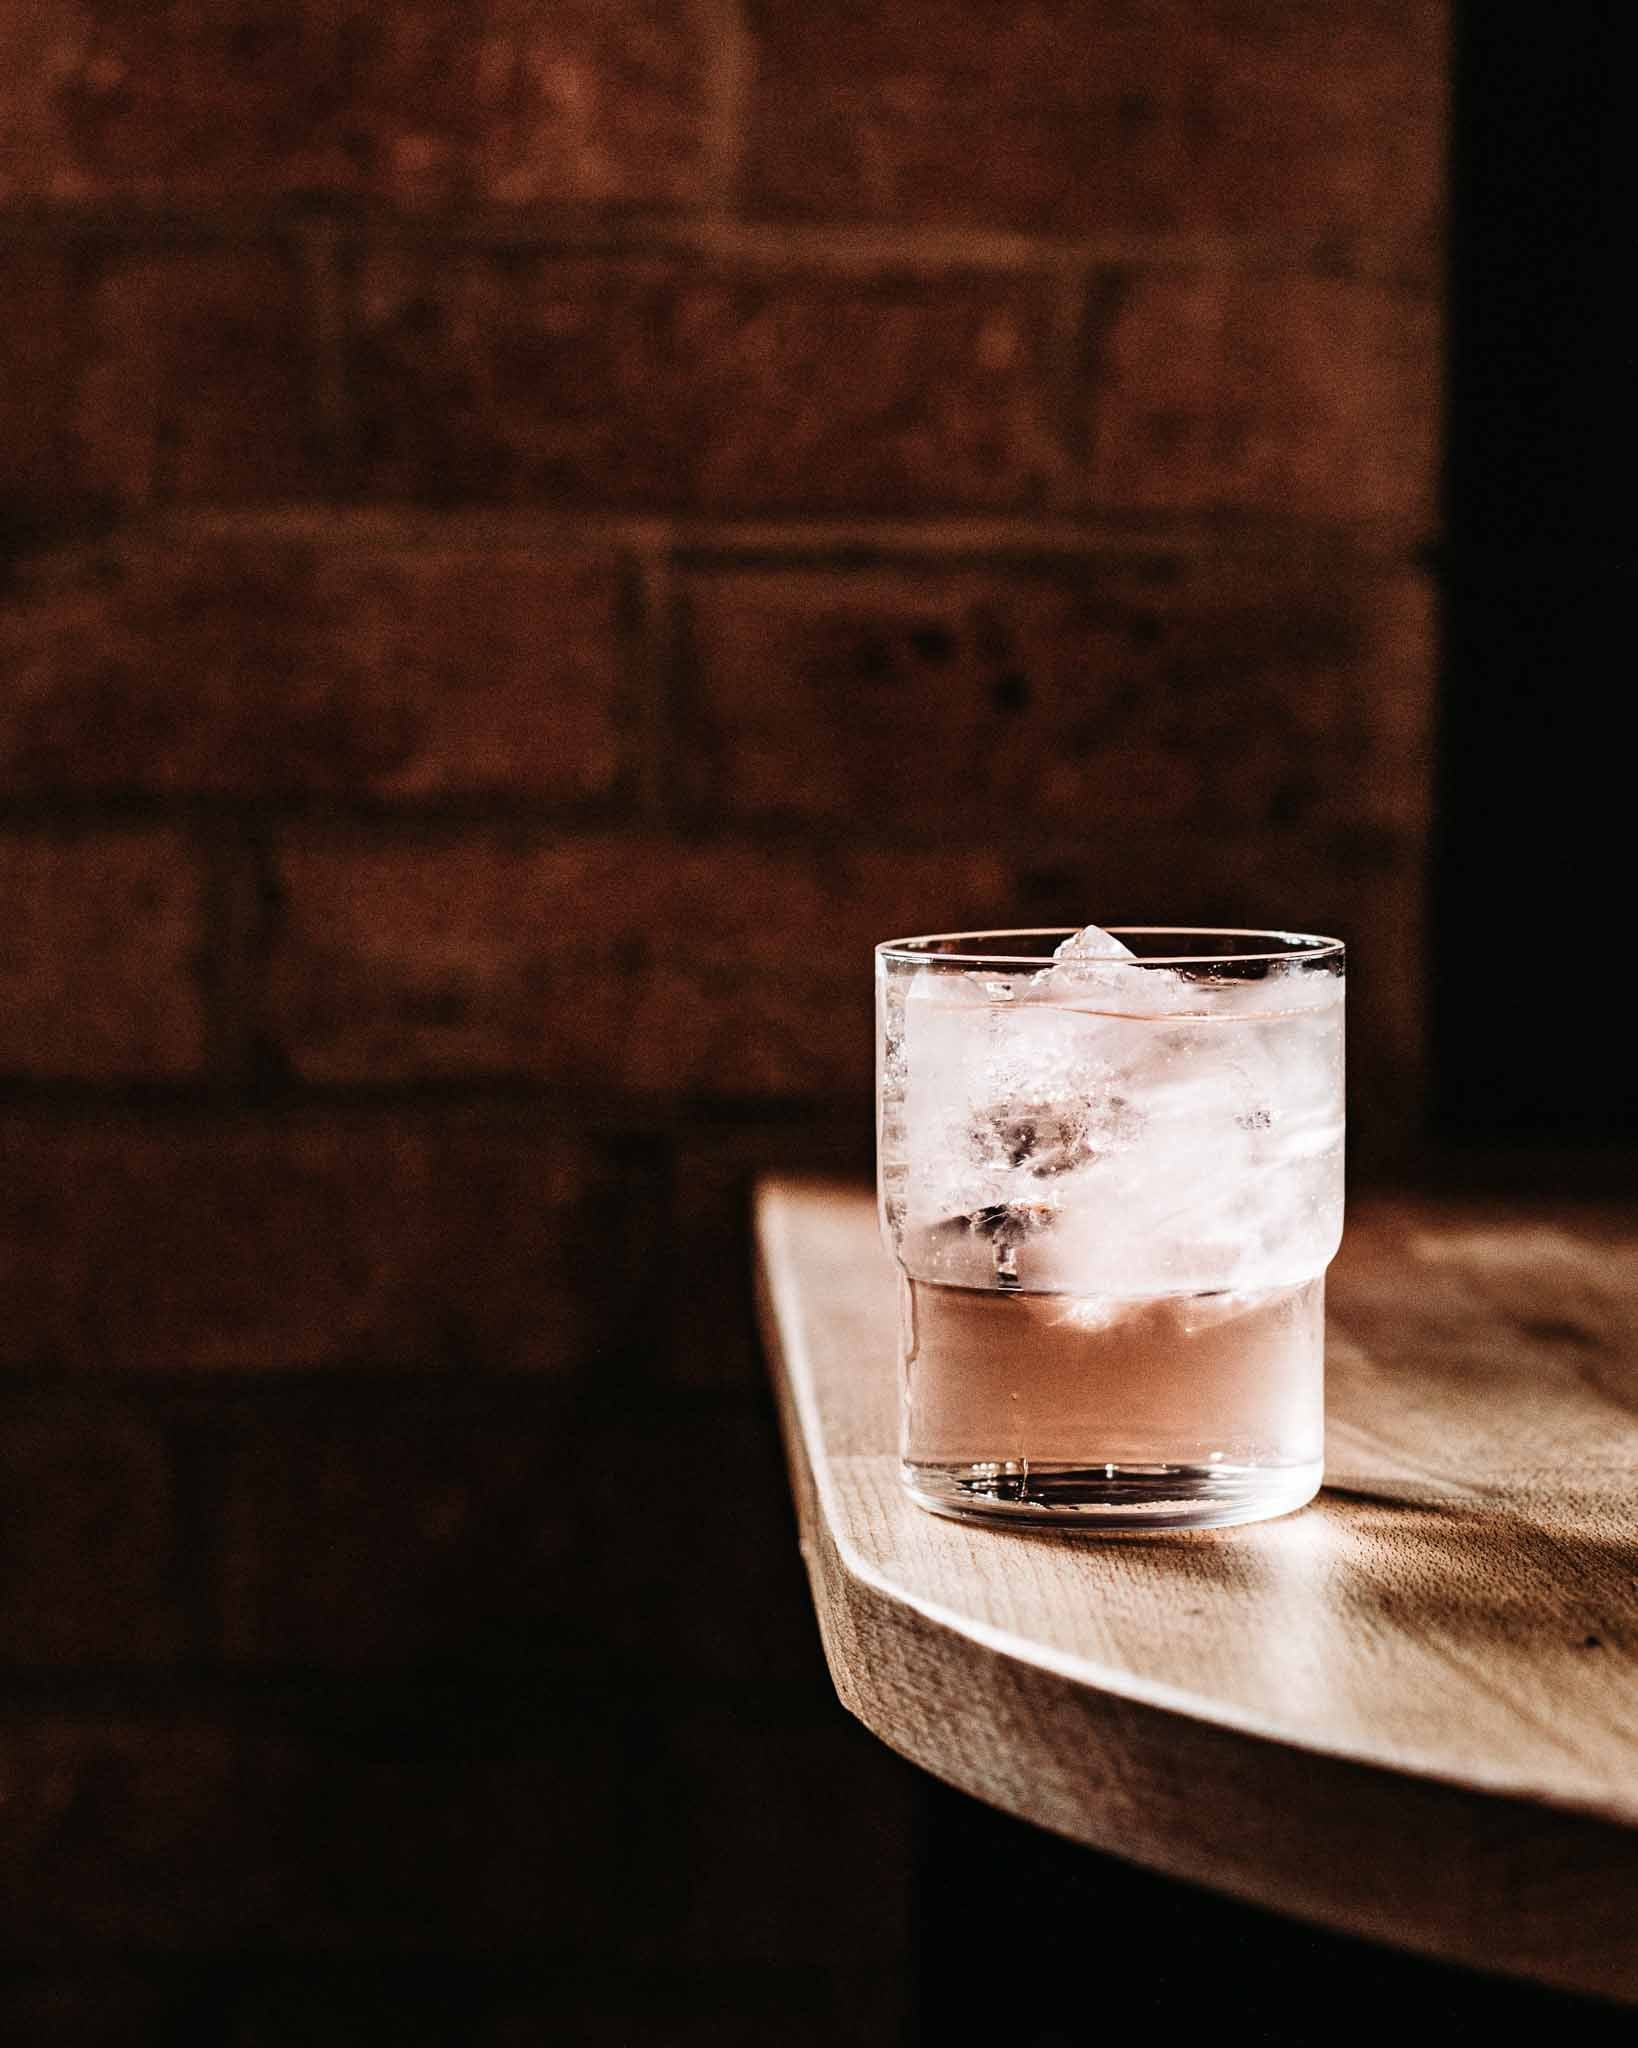 pink gin in a glass with tonic water and lots of ice sits on a table in Applewood bar